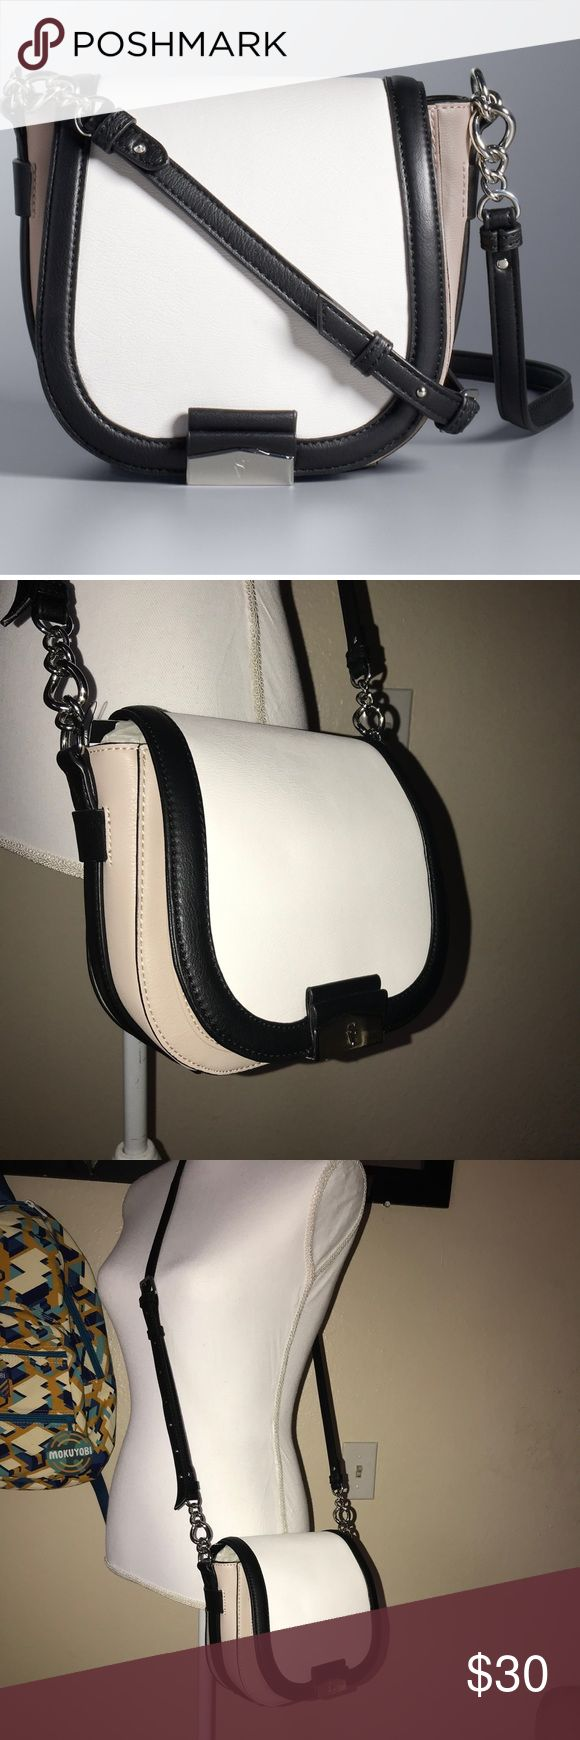 "Simply Vera Wang cross-body Bag Black Tan White Simply Vera Vera Wang Monte Saddle Bag purse with chain link strap accent and silver tone hardware. Adjustable shoulder strap with 23"" drop length. Magnetic clasp closure faux leather.  7""H x 8""W x 4""D Simply Vera Vera Wang Bags Crossbody Bags"